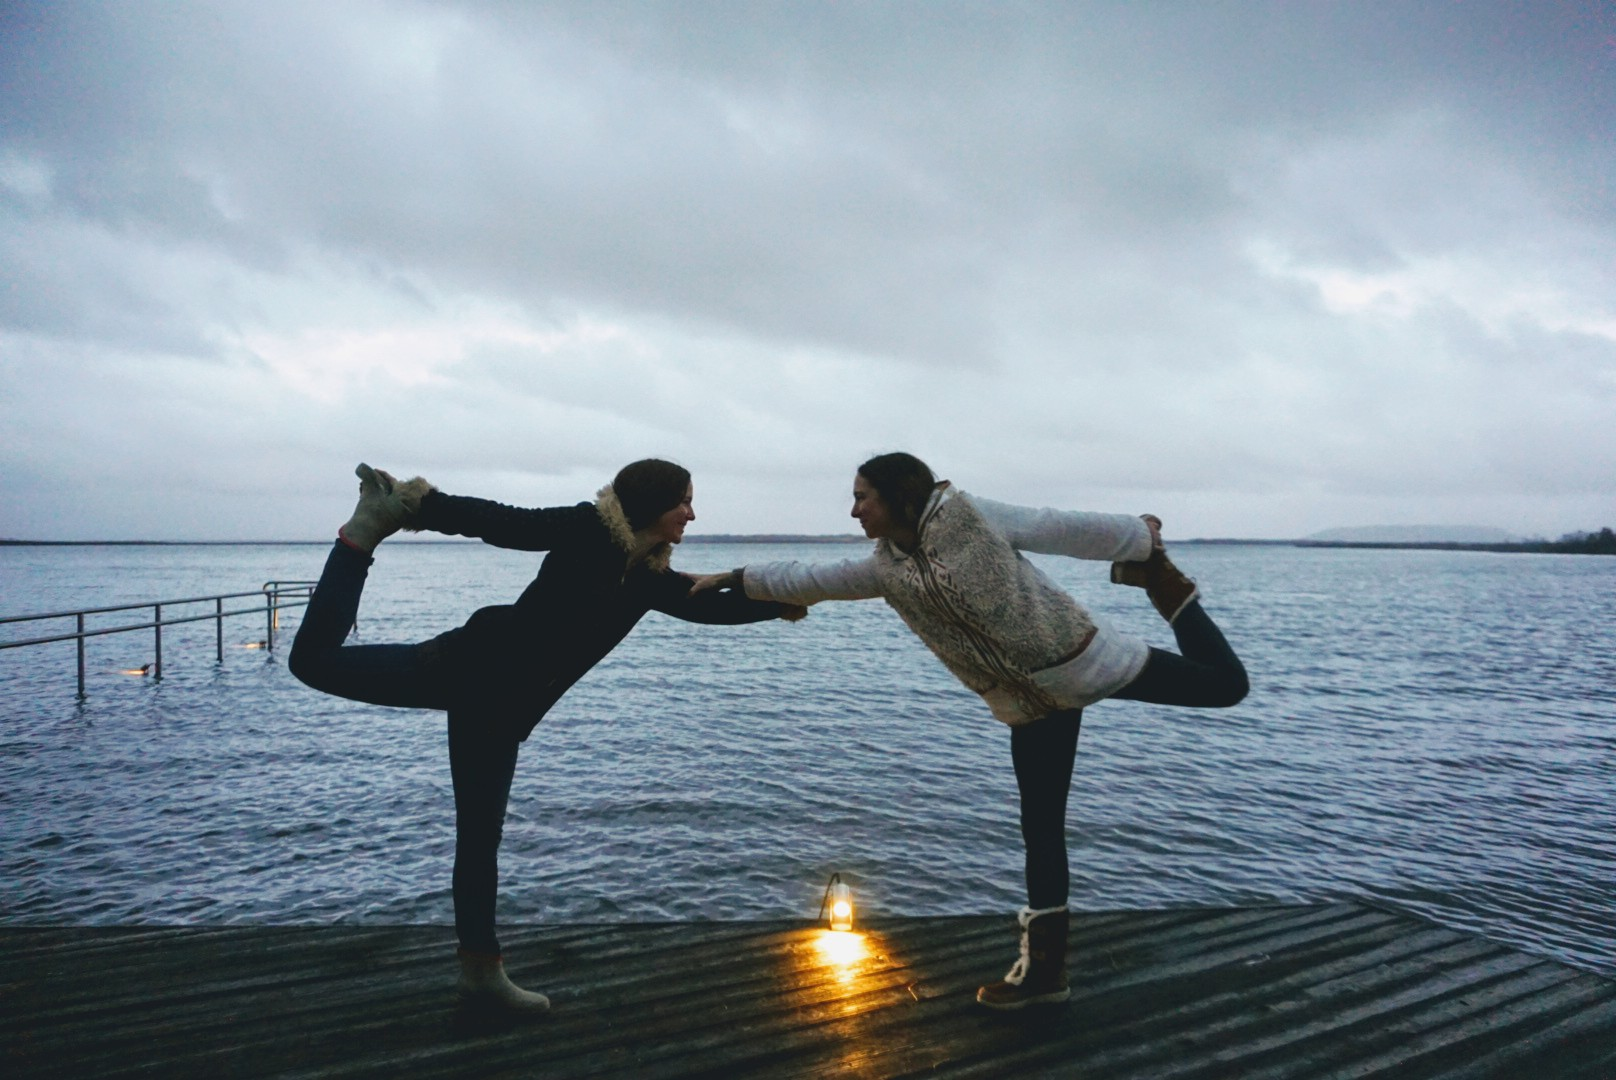 Yoga on the deck of the lake.